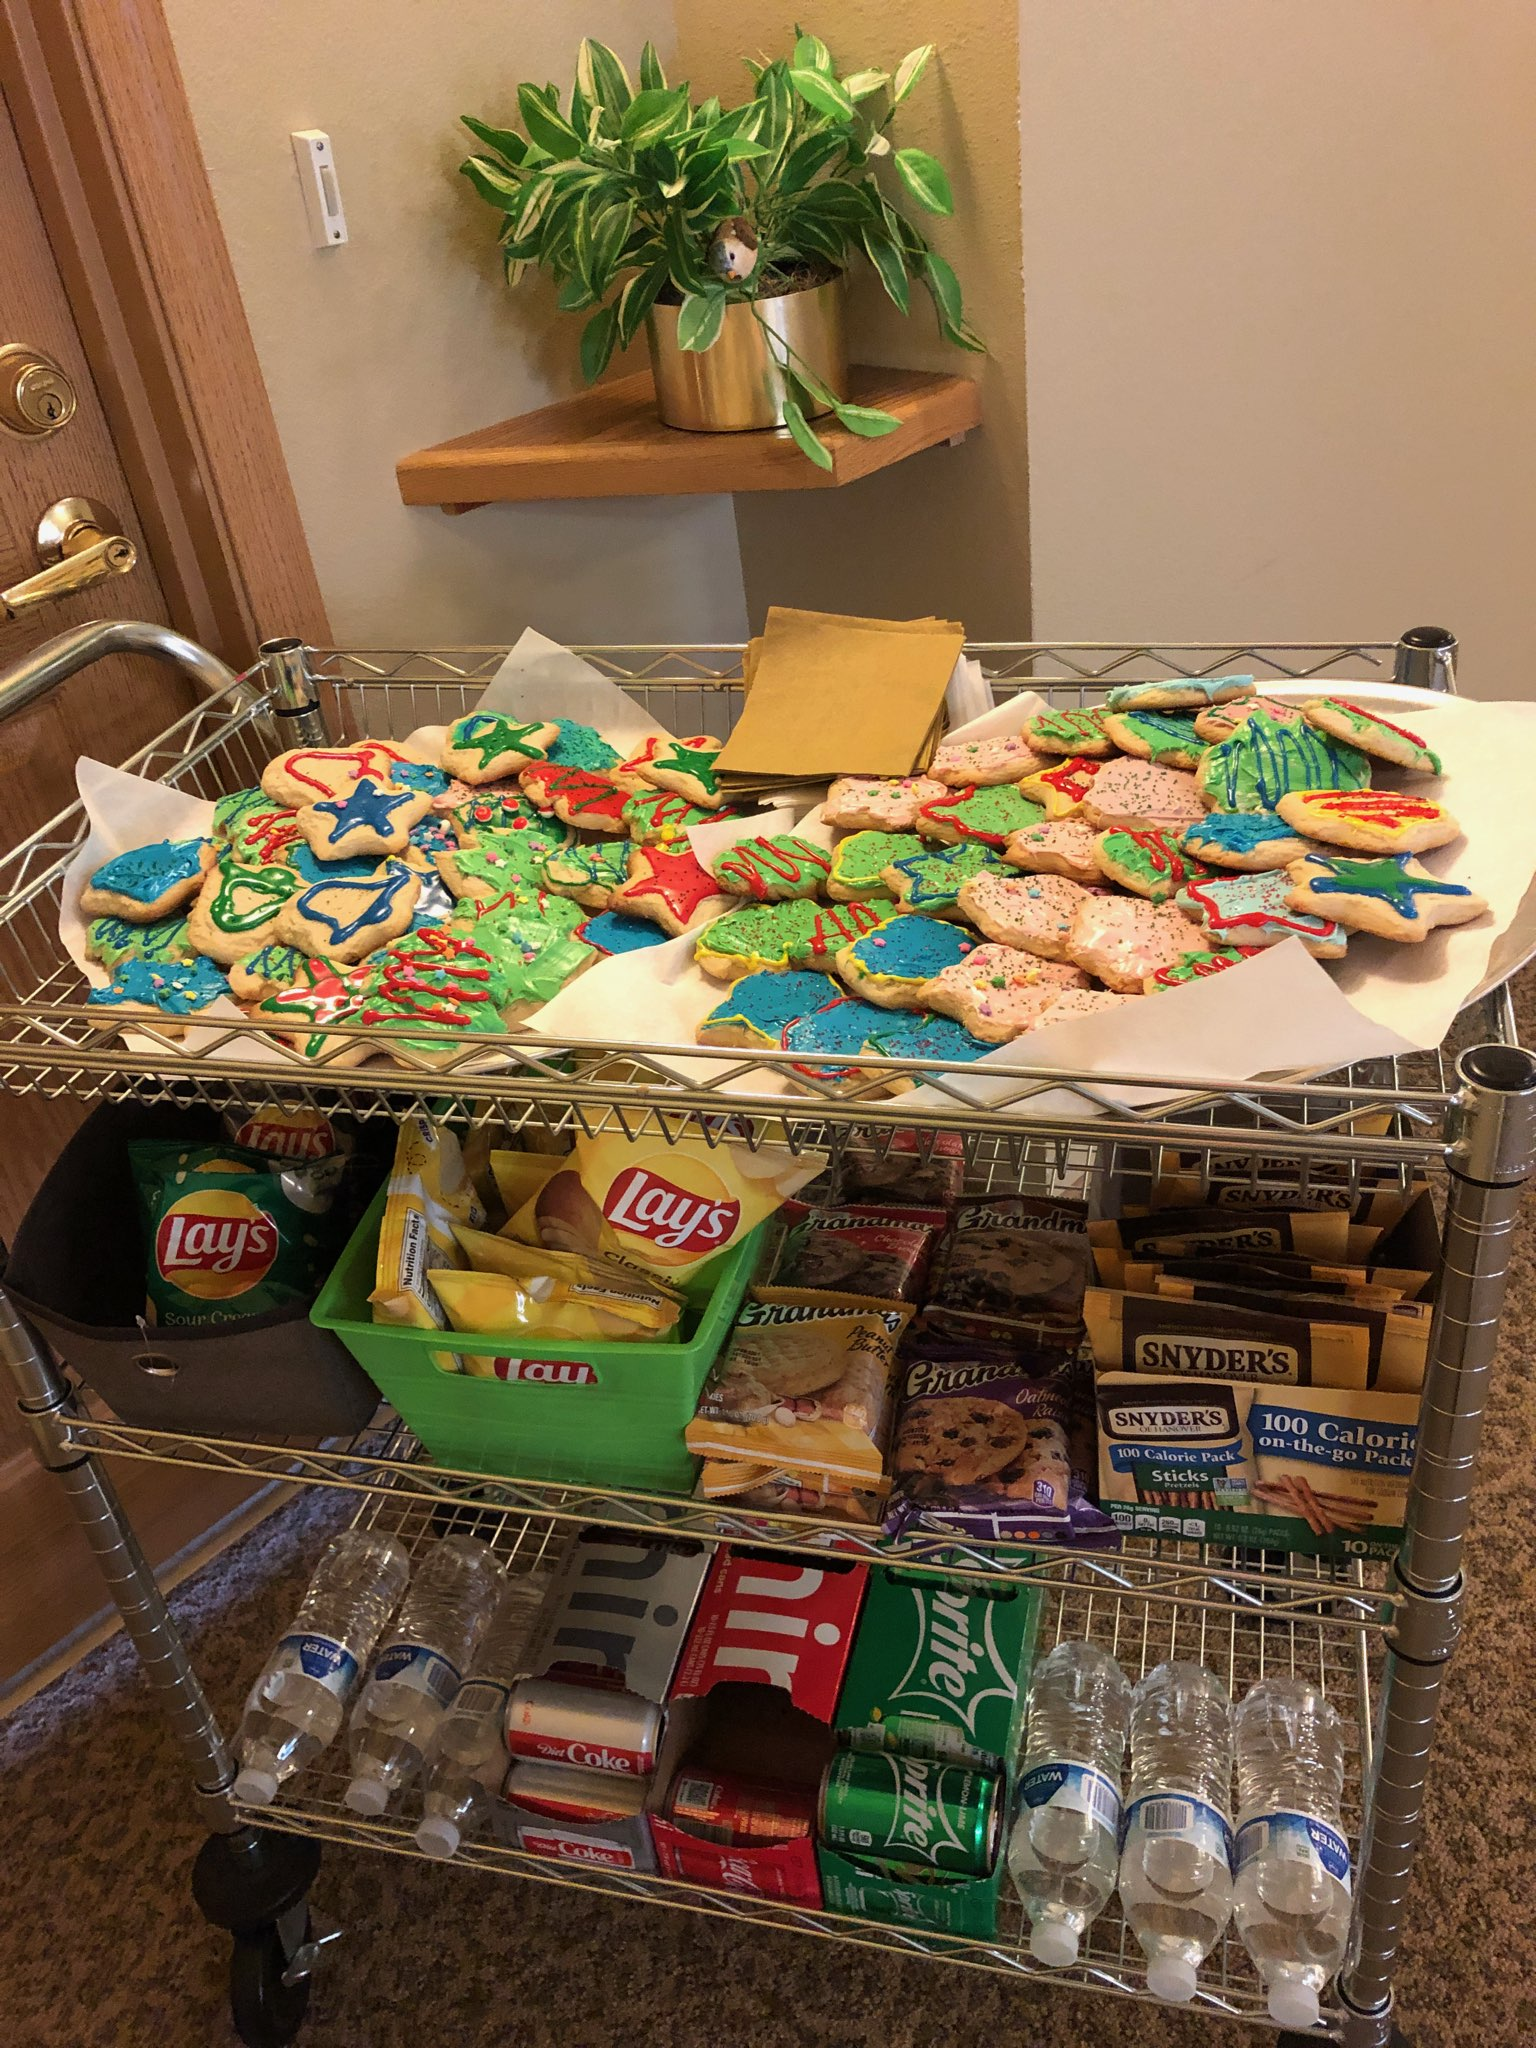 Look at all the yummy Christmas Cookies our Chef Bobby made for our residents! Sure makes the Snack Cart look better today!